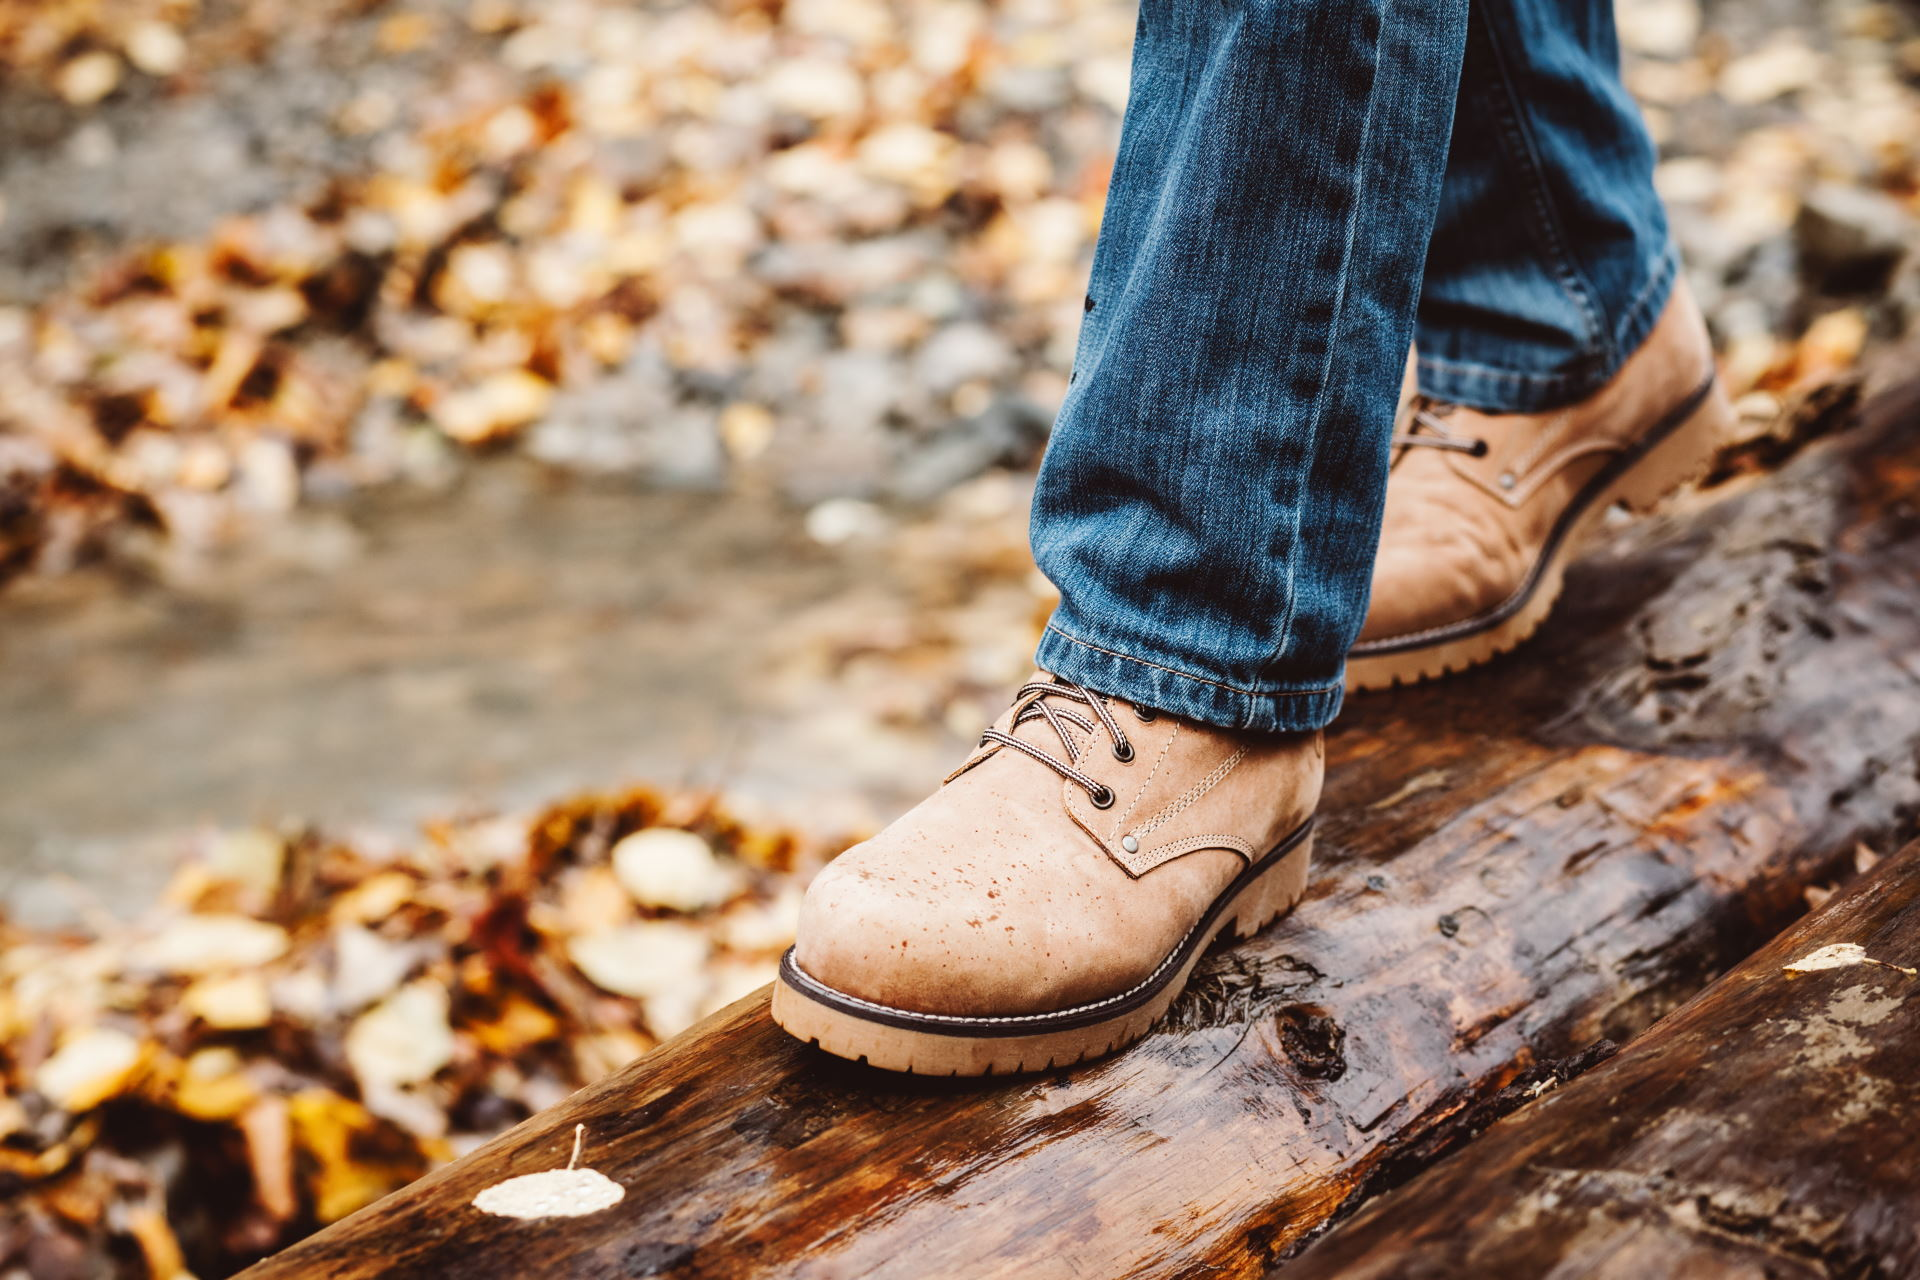 Hiker wearing boots walking across river in autumnal forest. Footwear on man's legs closeup outdoor. Male seasonal shoes.